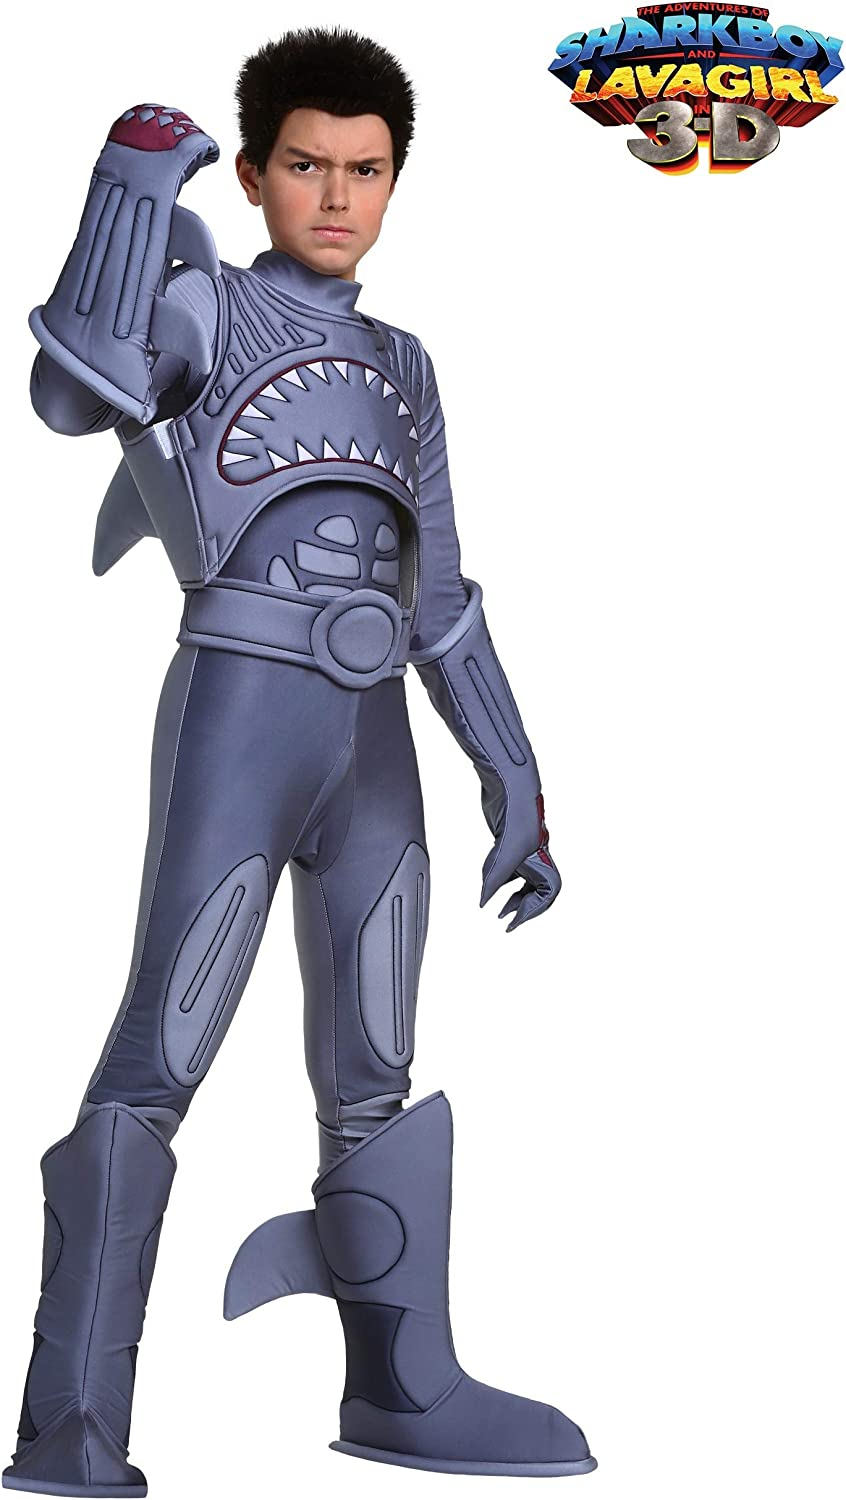 Sharkboy Costume Kids Sharkboy and Lavagirl Costume Officially Licensed